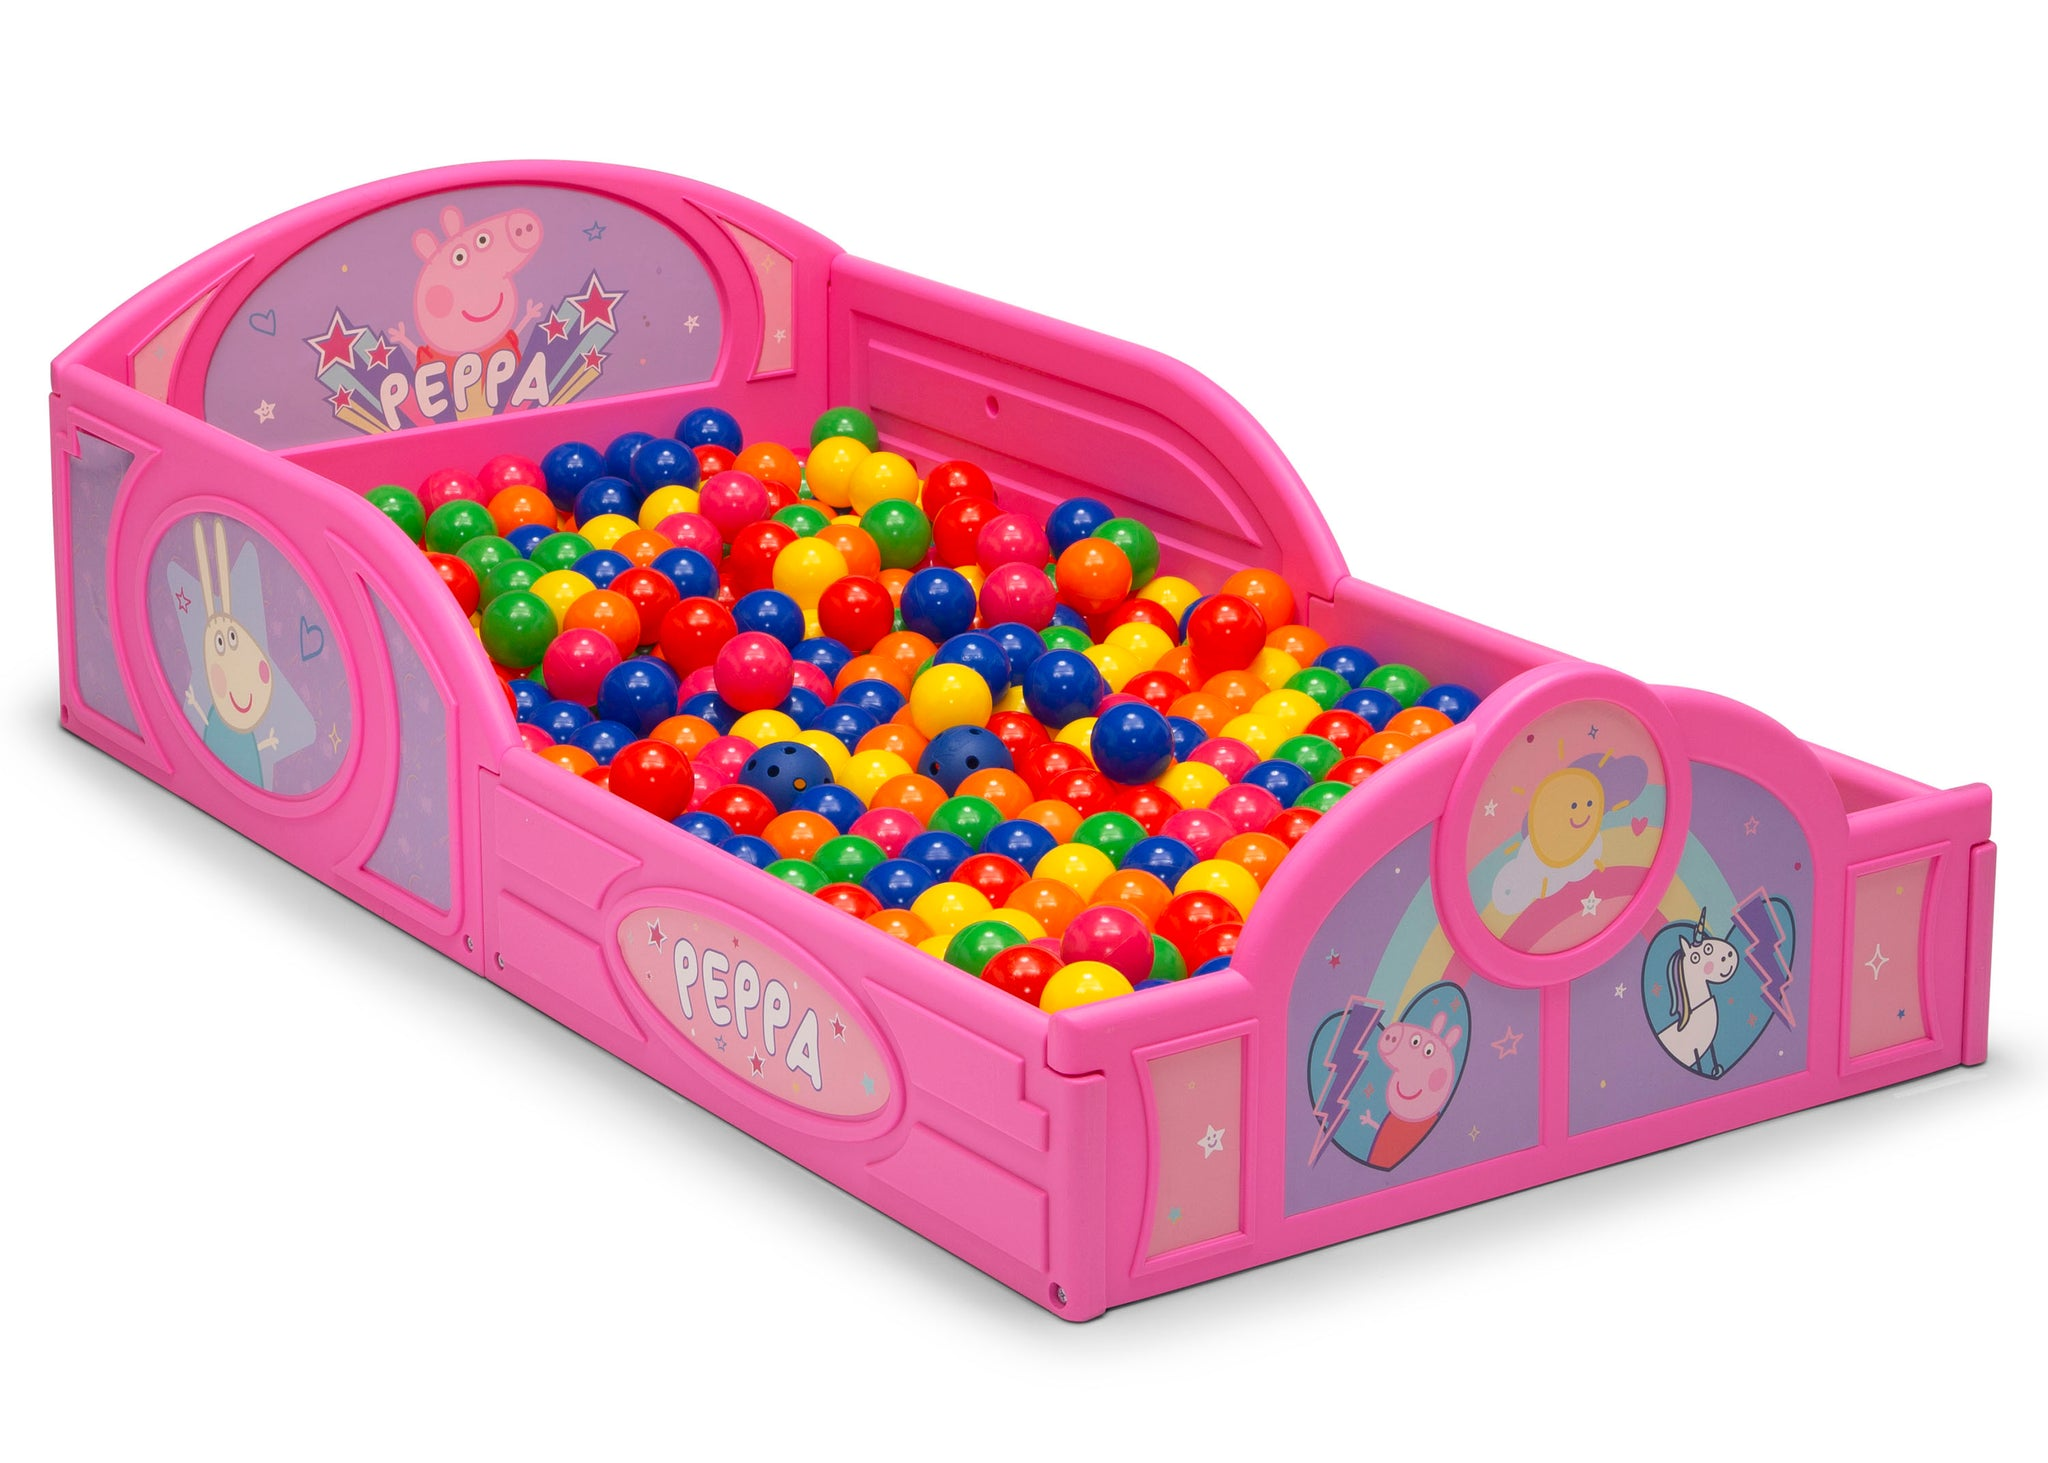 Delta Children Peppa Pig (1171) Plastic Sleep and Play Toddler Bed, Right Silo View Ball Pit